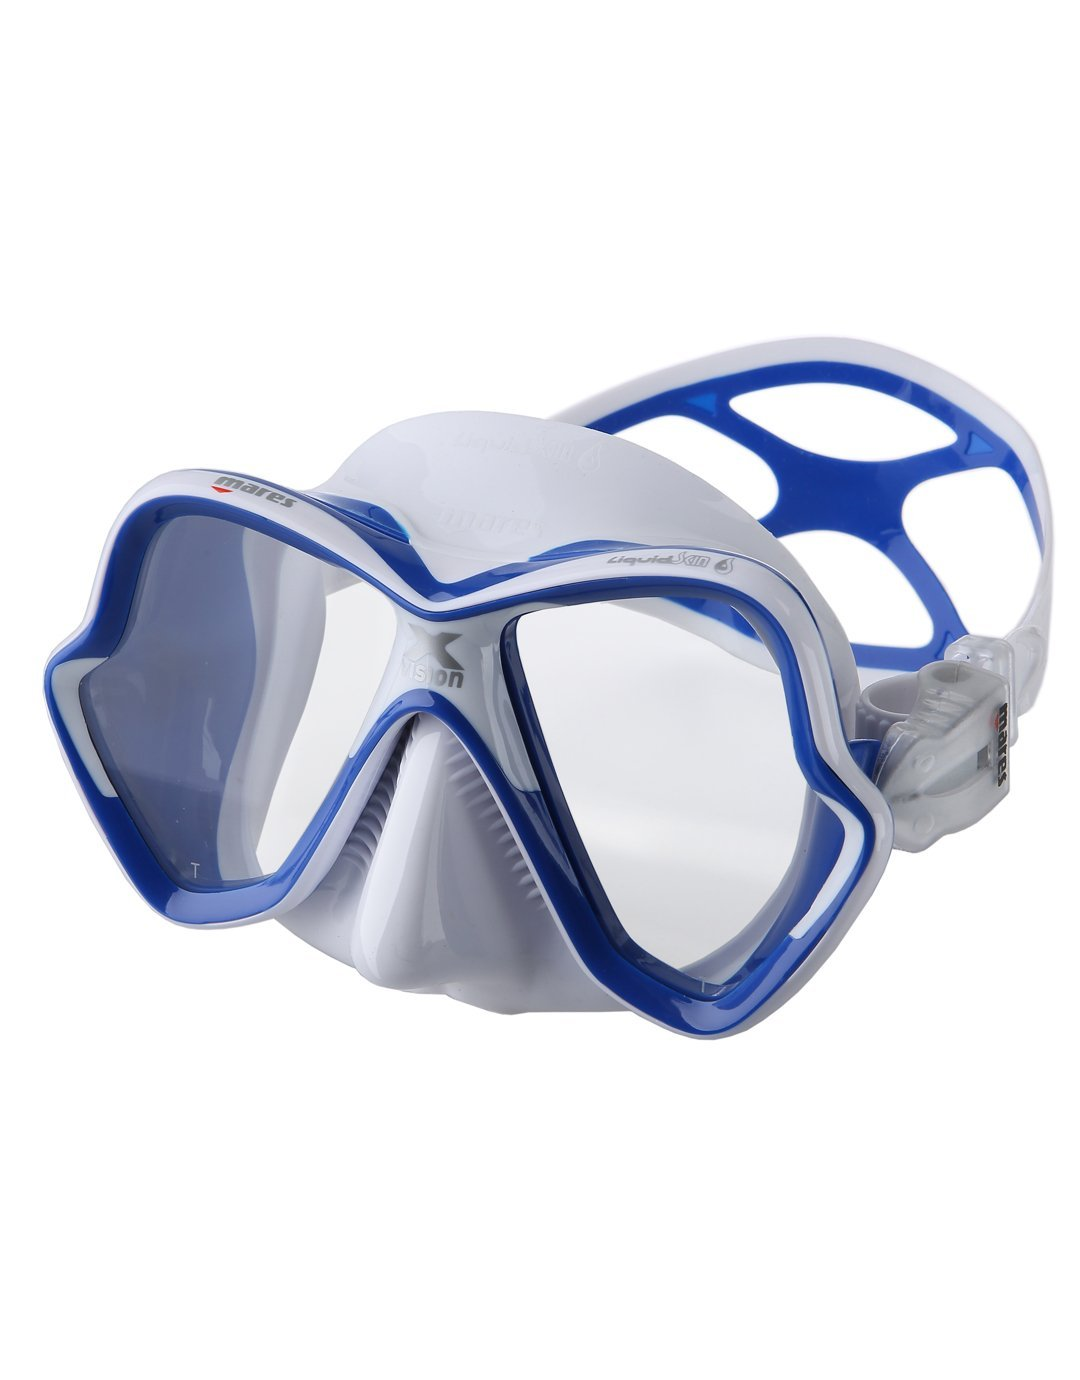 Mares X Vision Ultra Liquid Skin Diving Mask Available From Simply Scuba